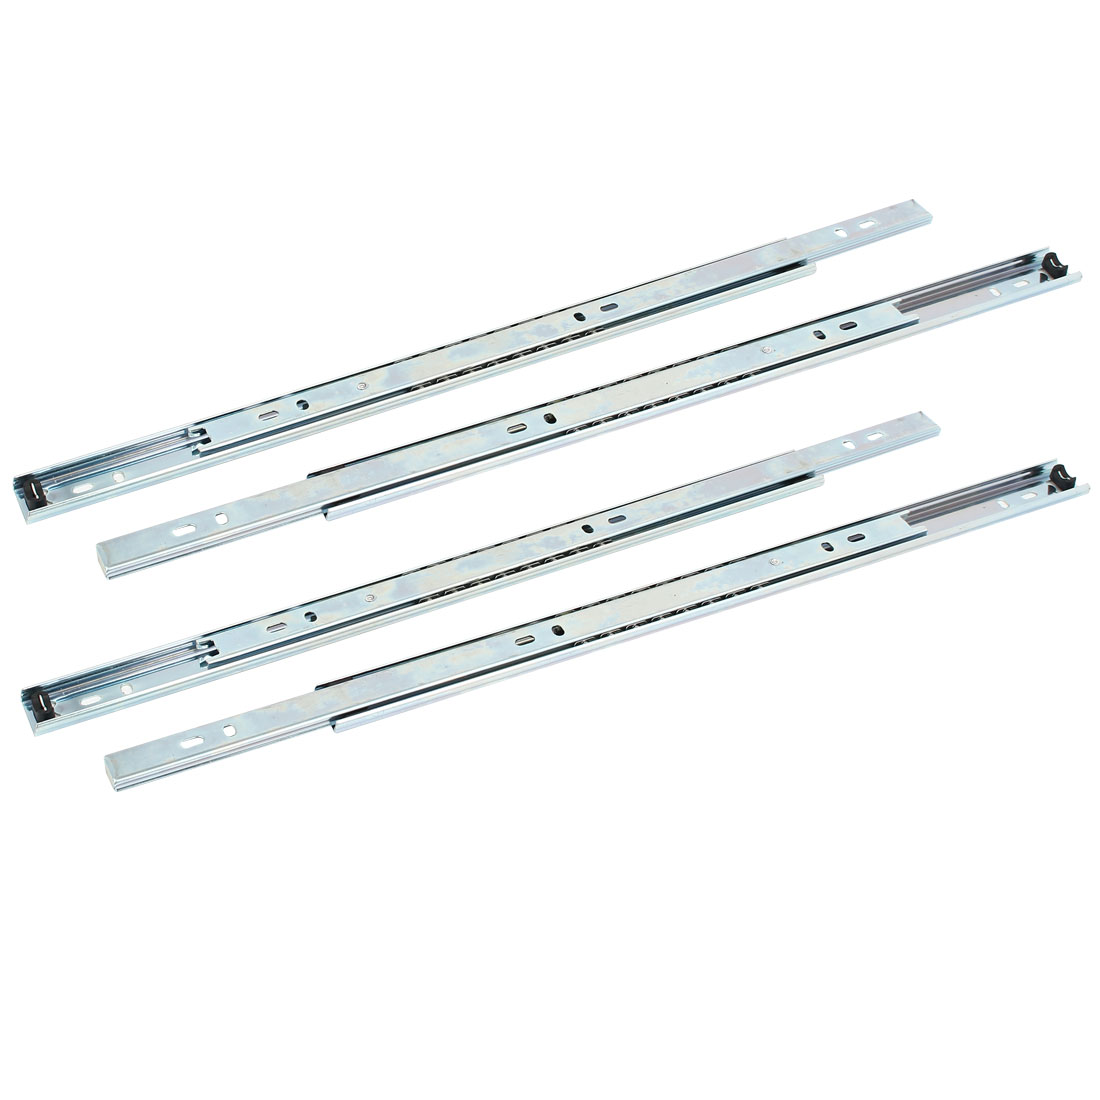 Uxcell Cabinet Drawer 2-Section Telescopic Ball Bearing Slides Rail 16'' Length 4Pcs